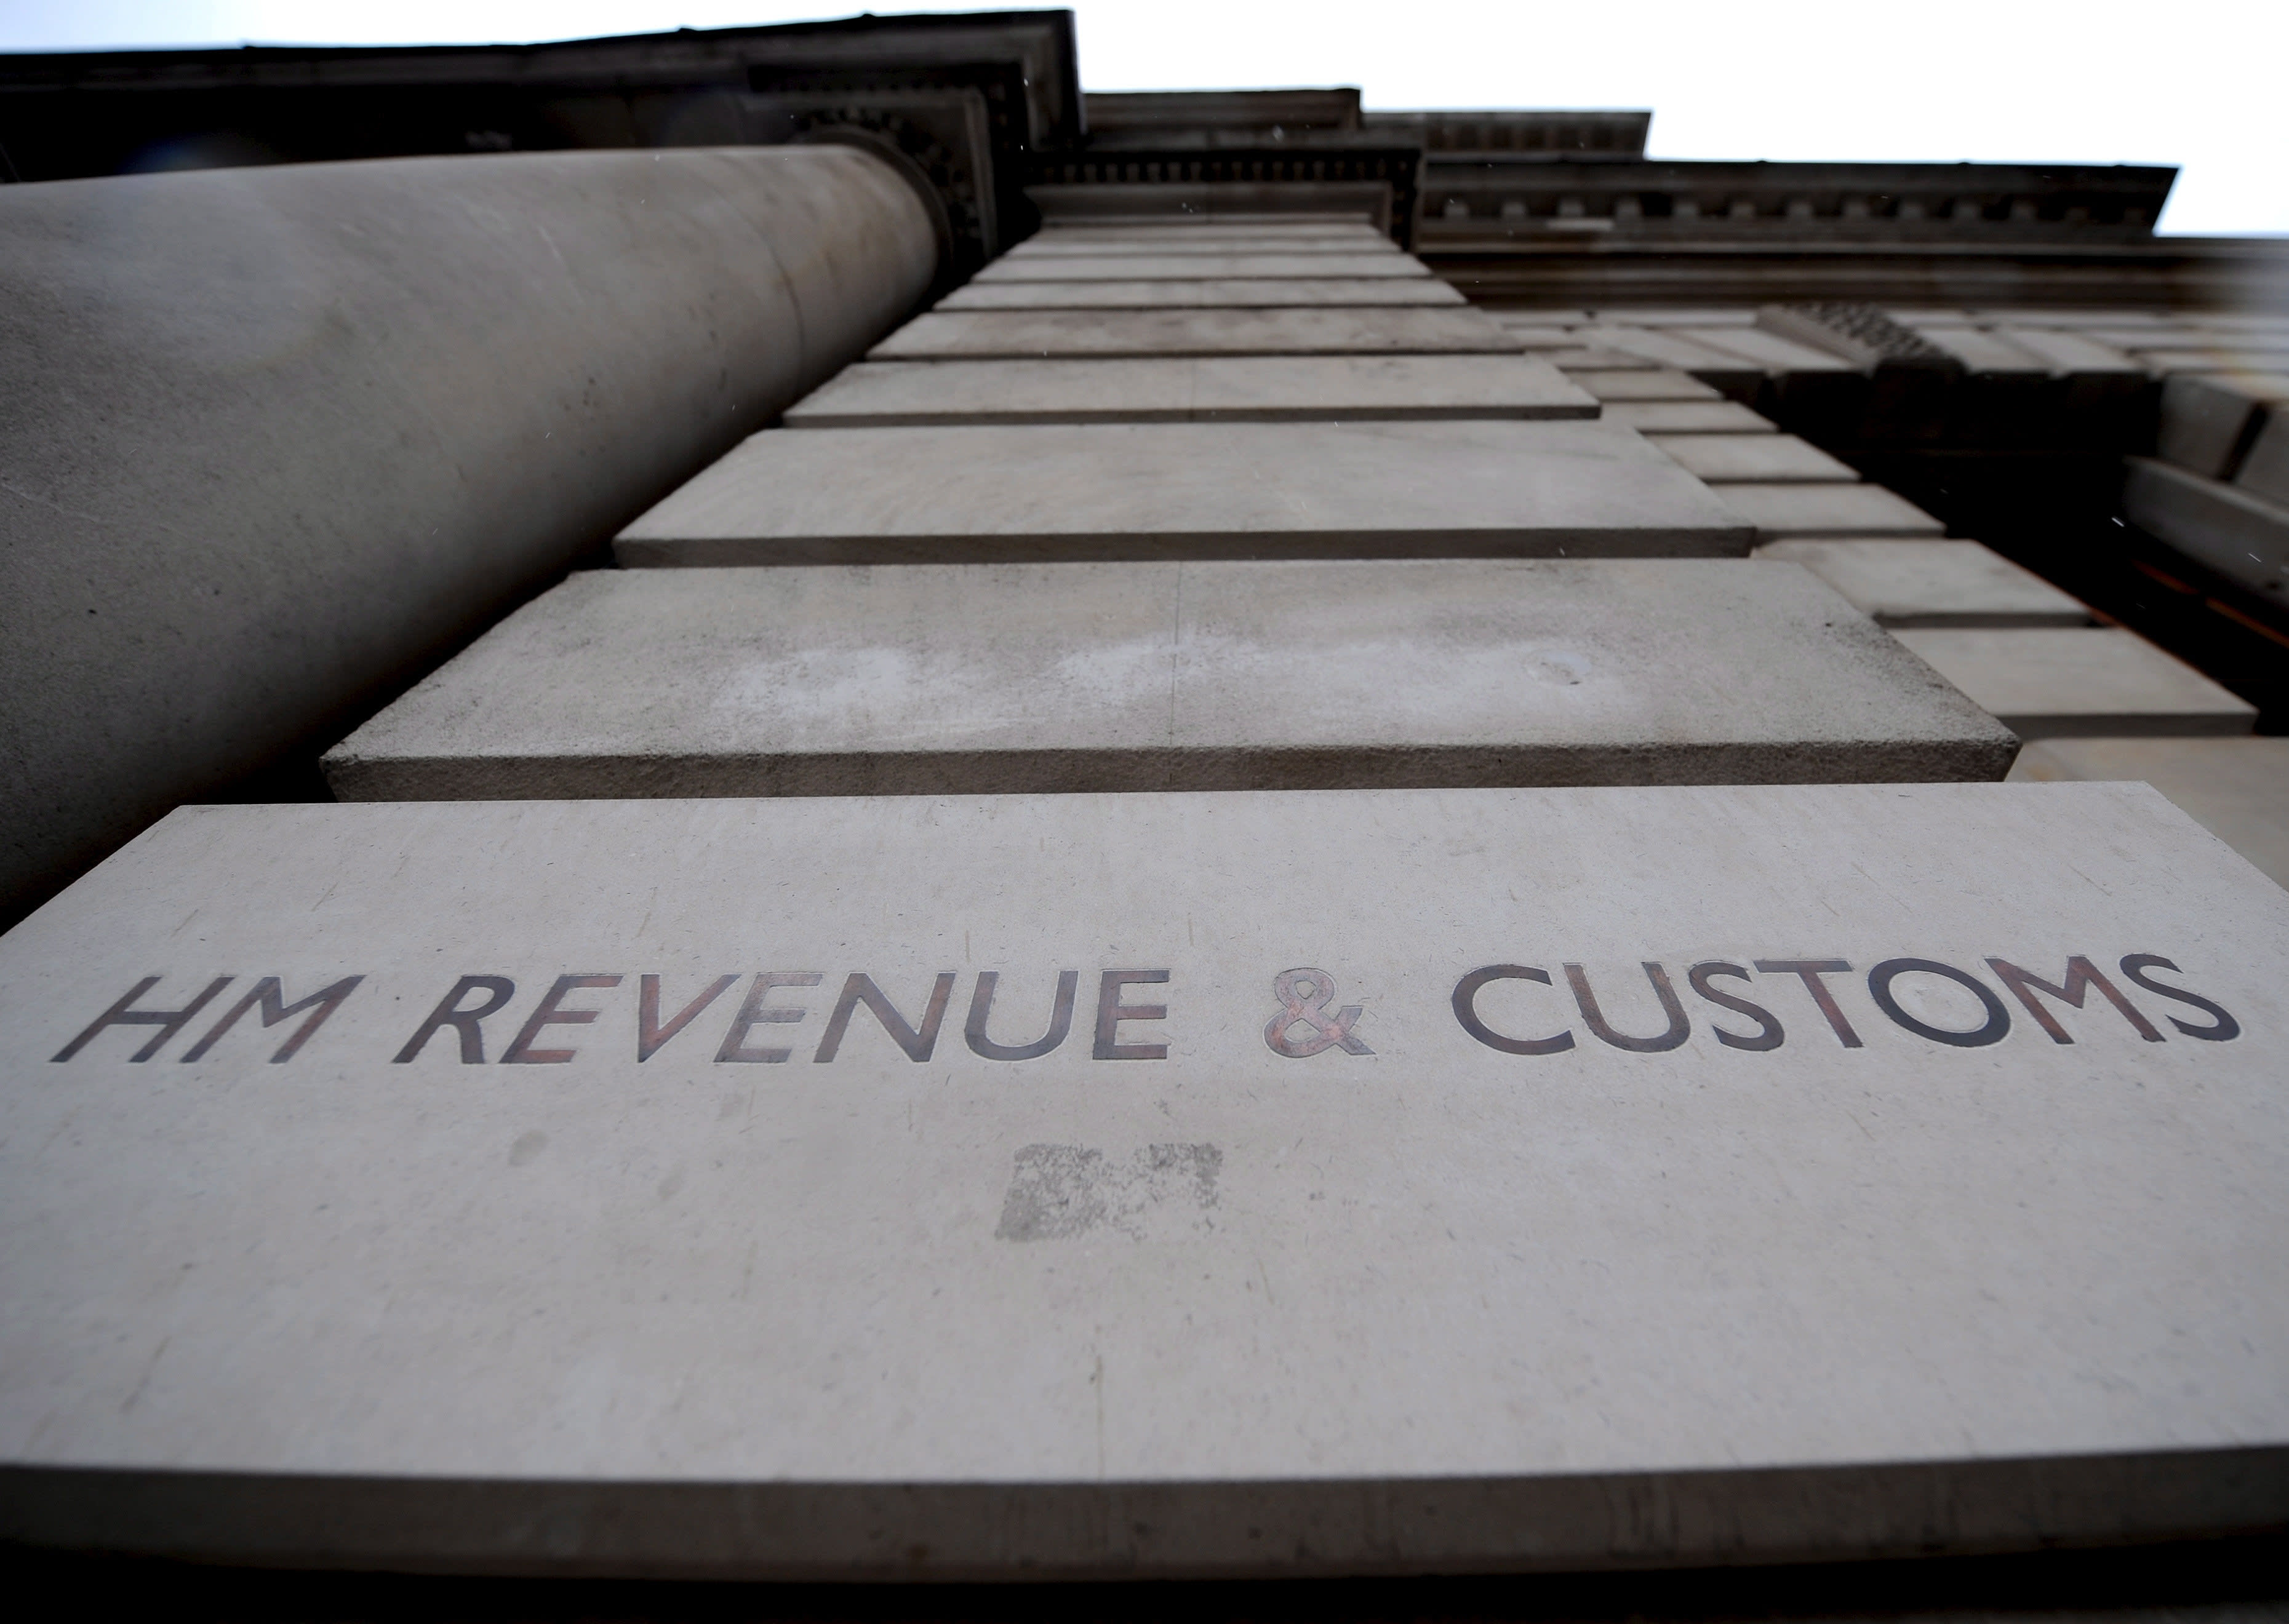 Scammers impersonate HMRC in threatening phone calls